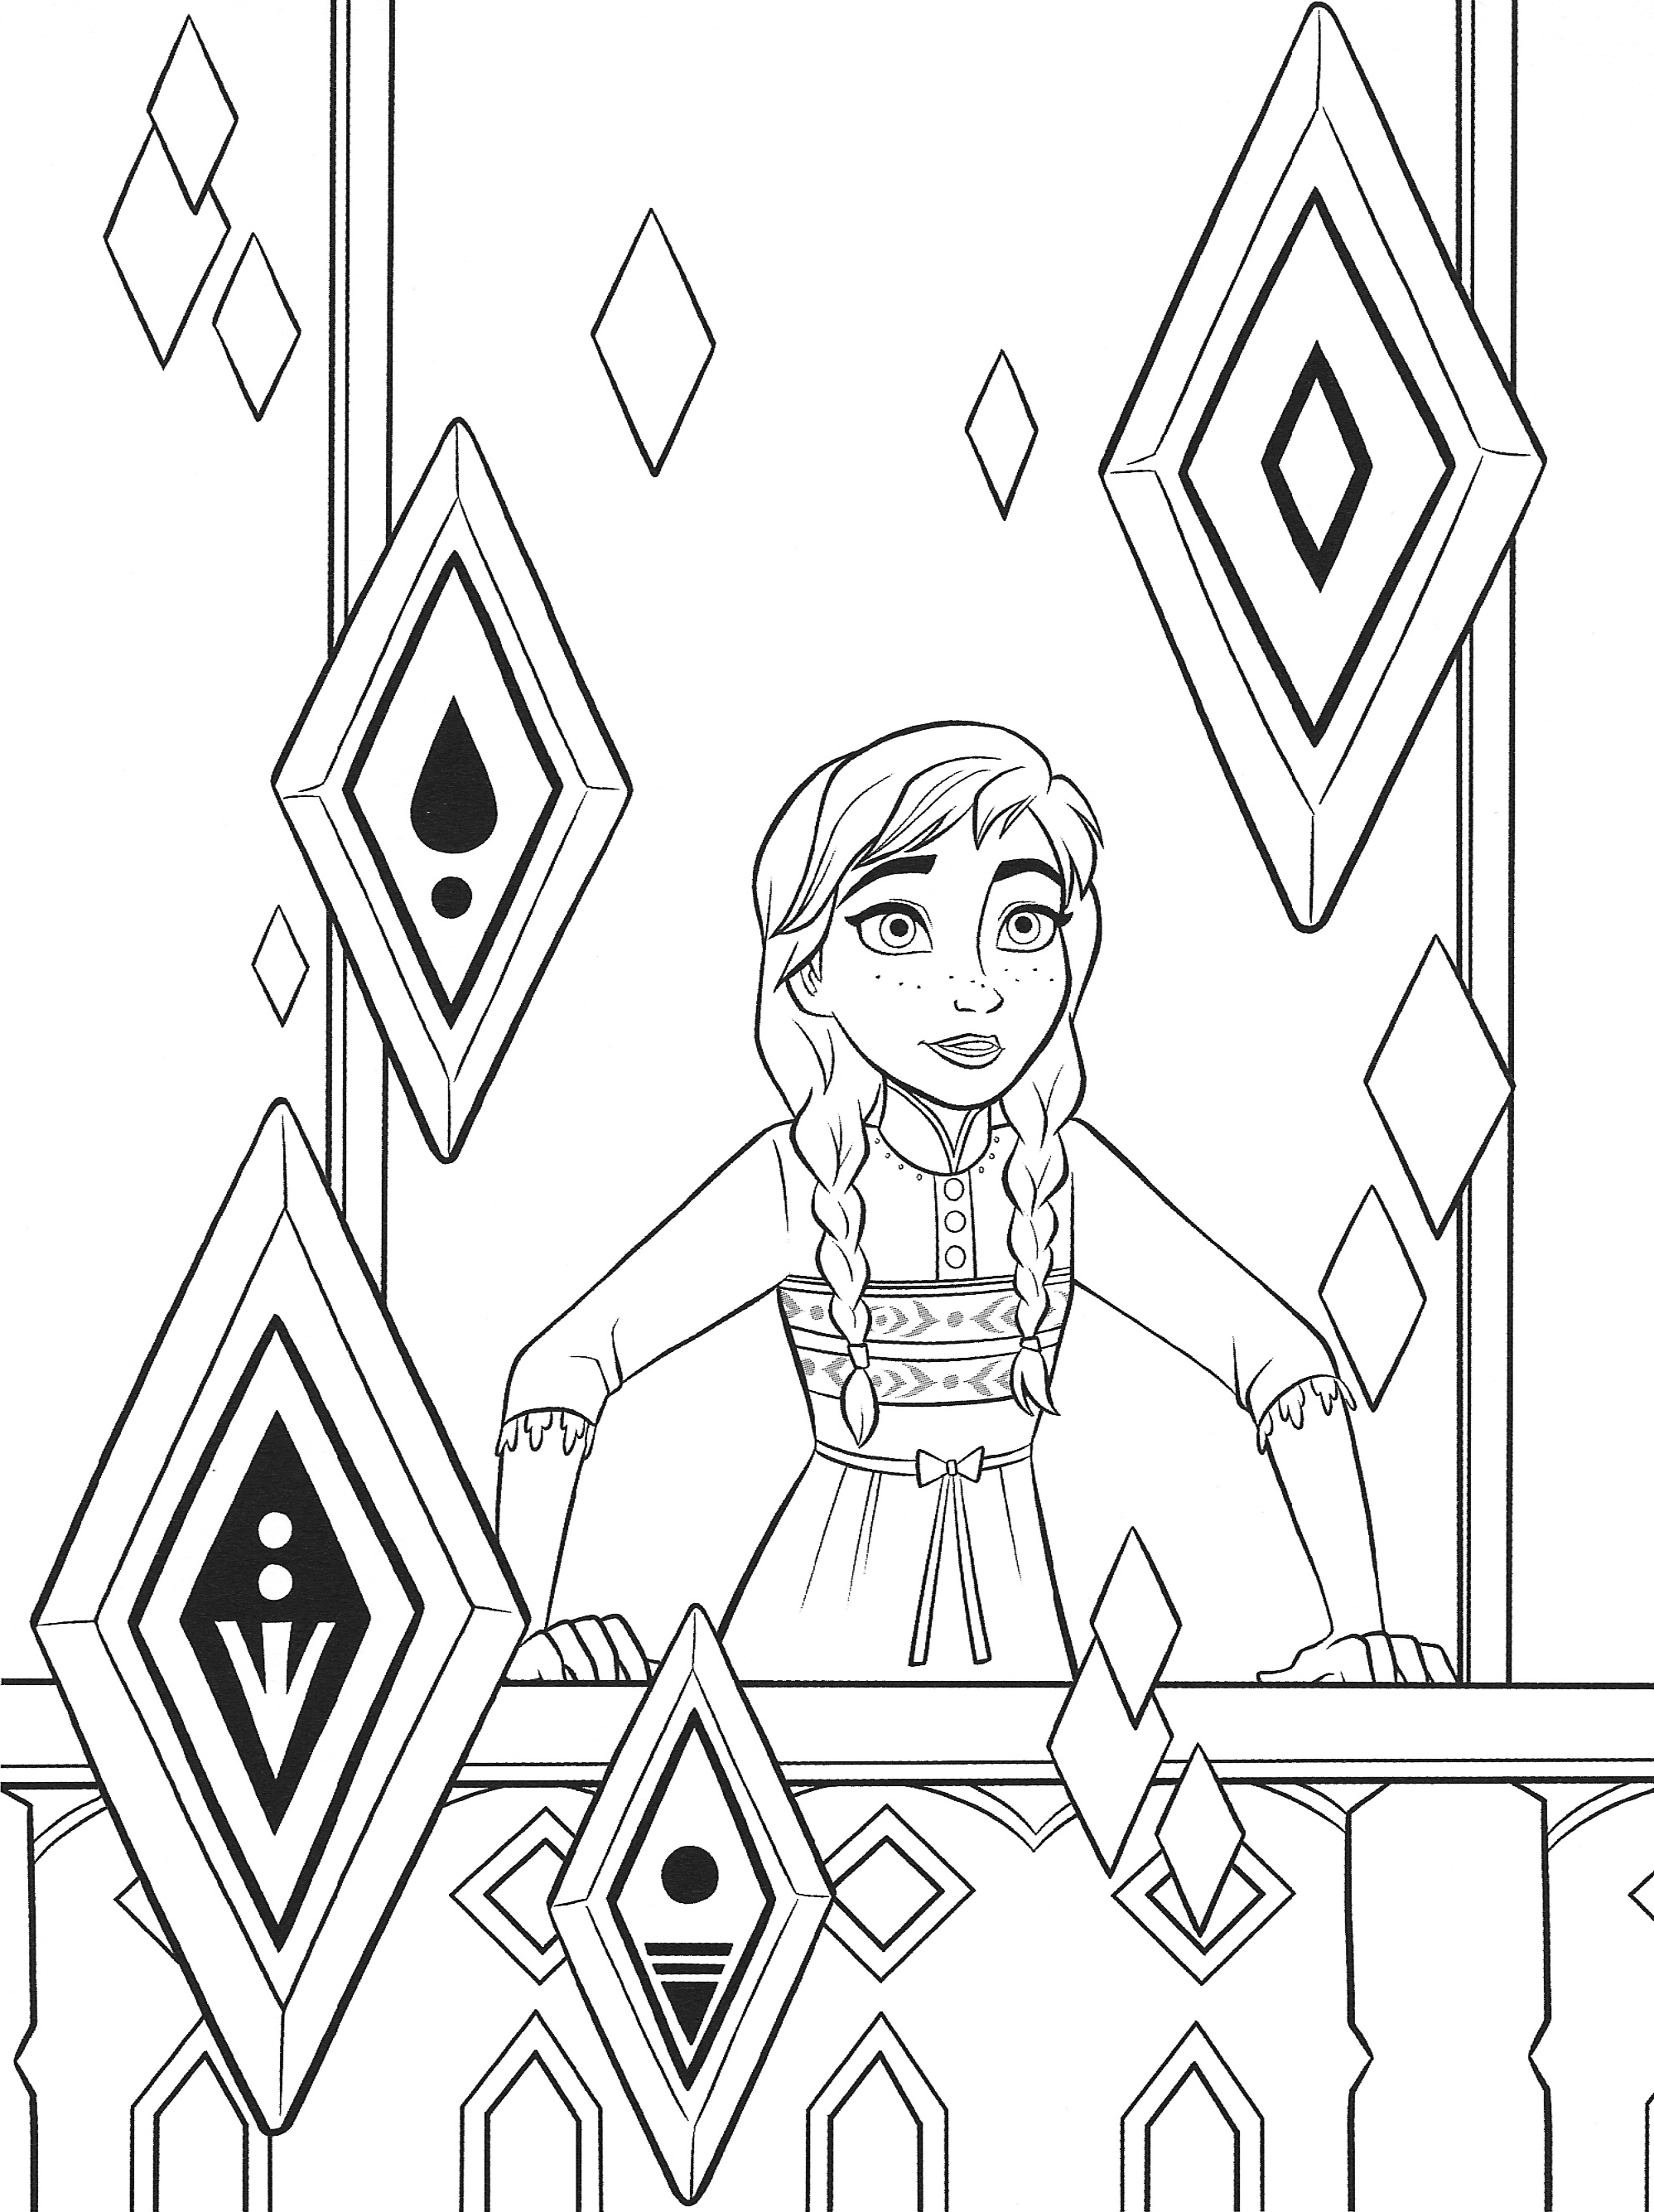 frozen 2 coloring pages new frozen 2 coloring pages with anna youloveitcom 2 coloring frozen pages